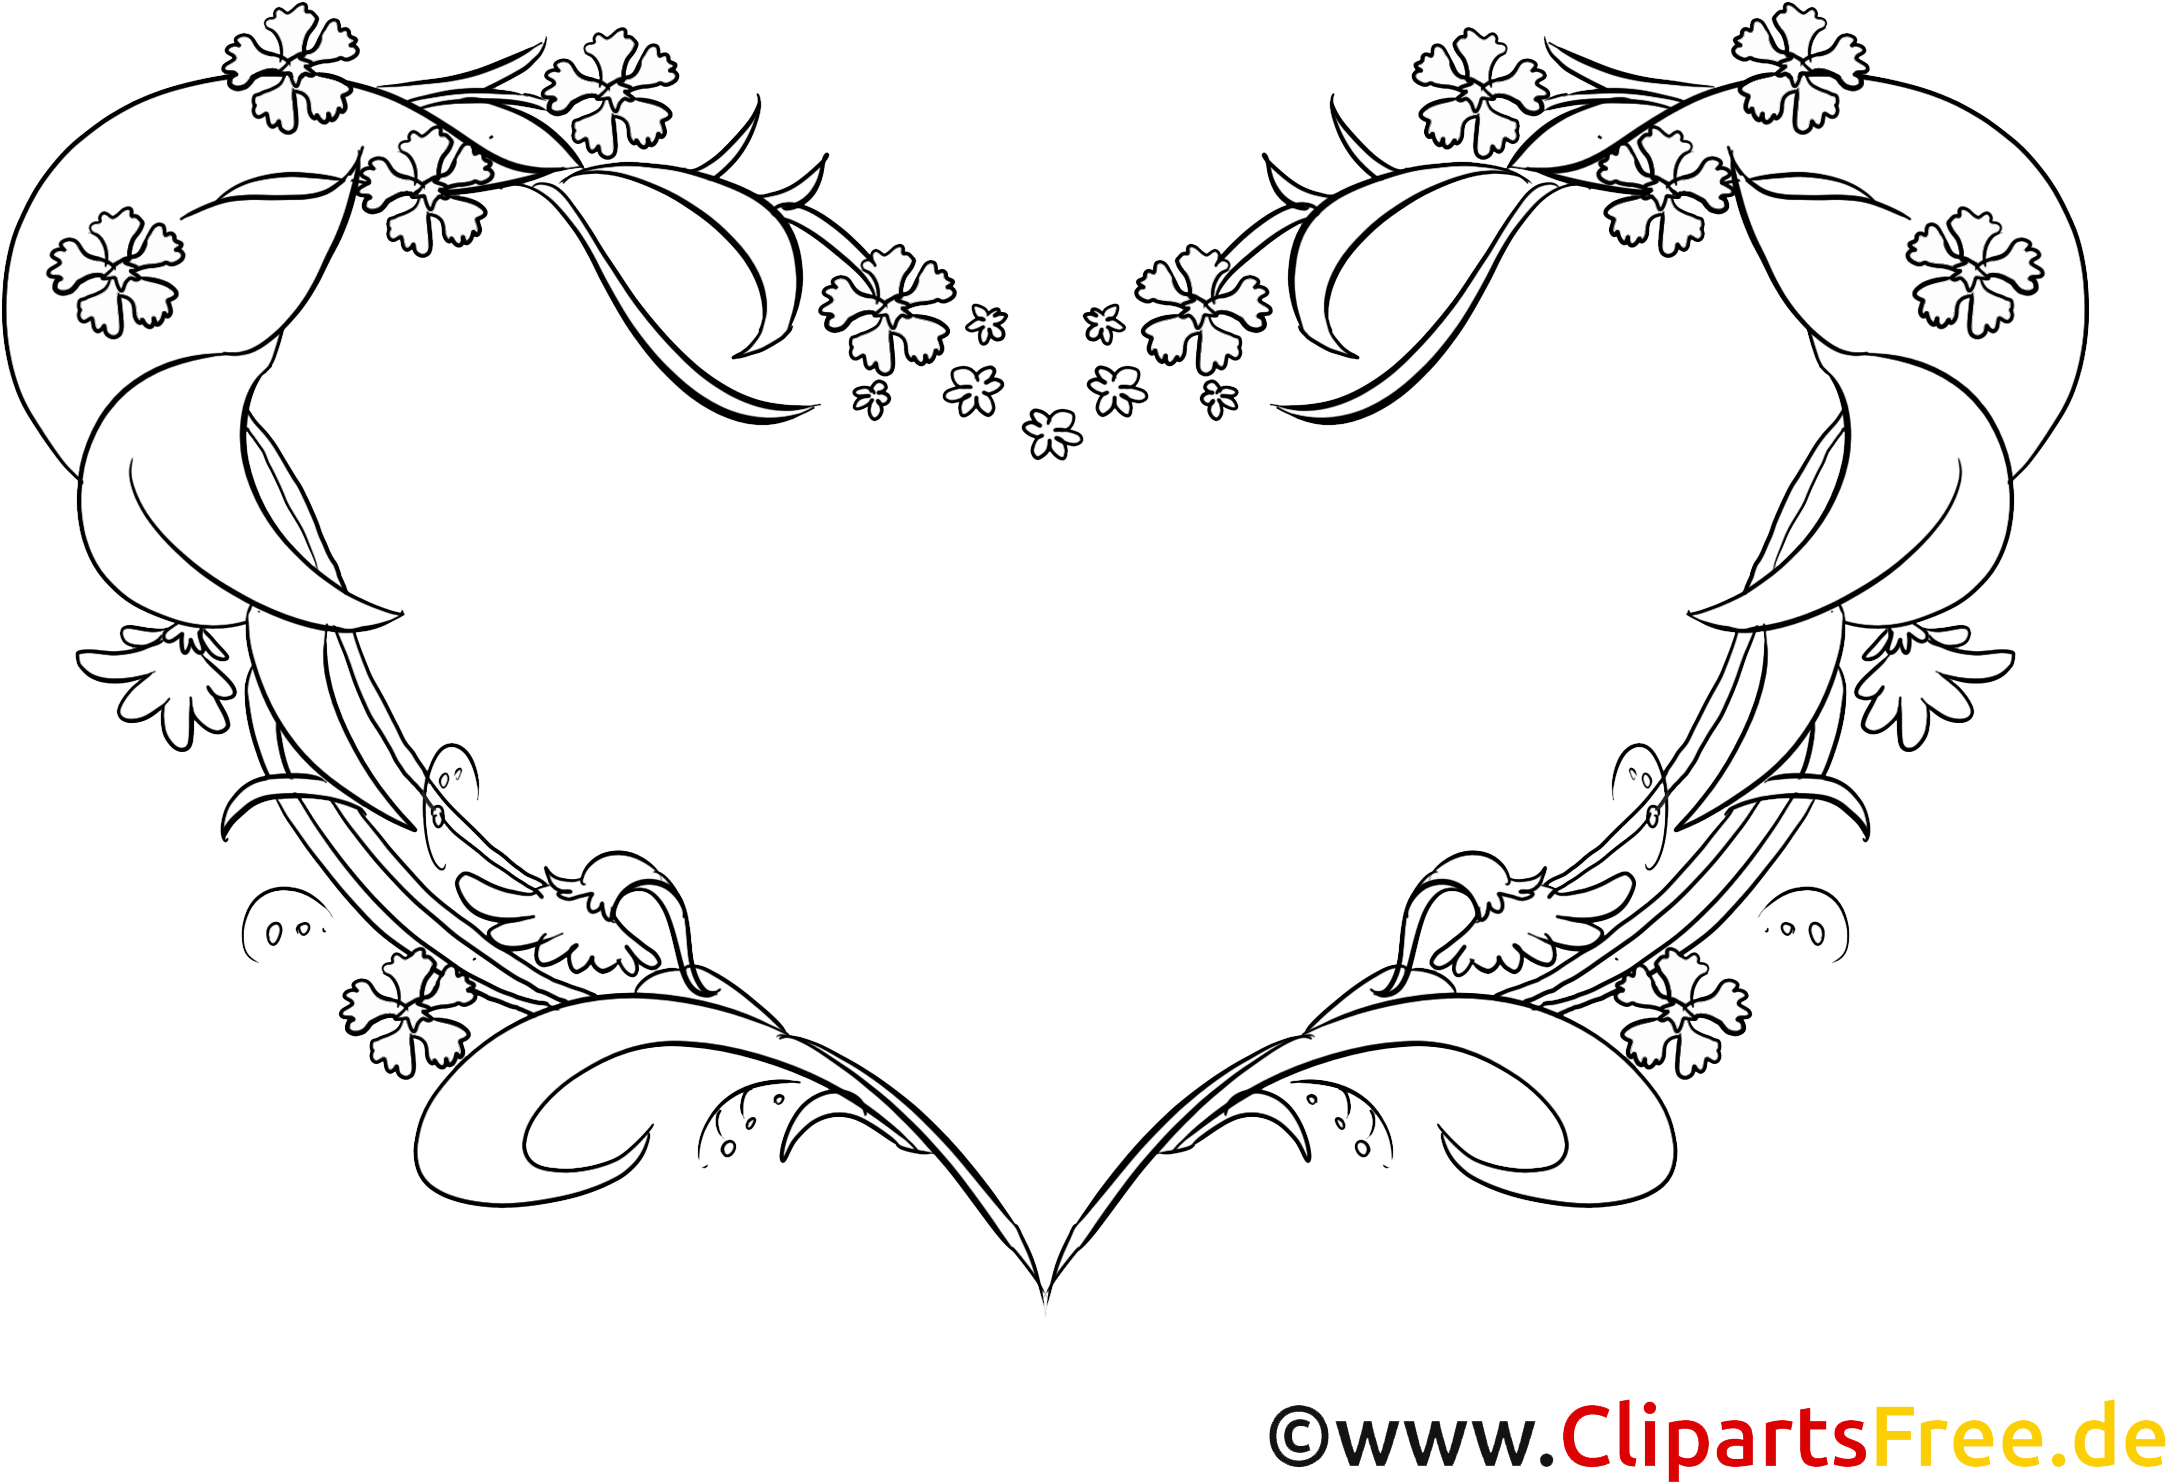 Coloriage Dessins Coeur Clipart Gratuit Line Art Transparent